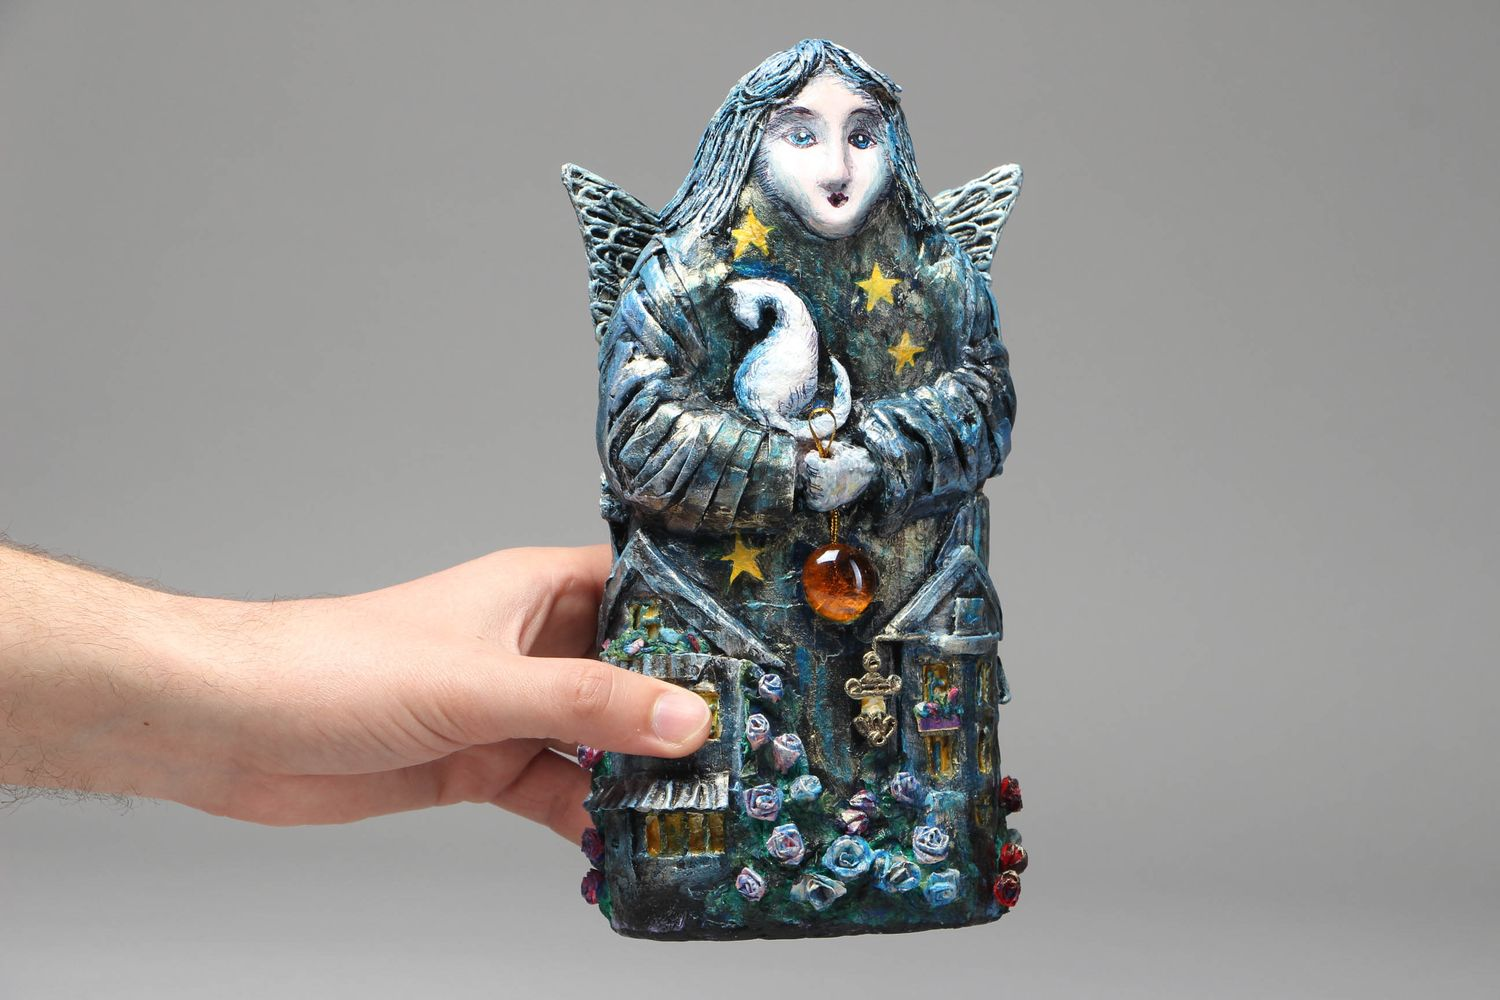 nesting dolls and souvenir dolls Papier mache statuette City Angel - MADEheart.com